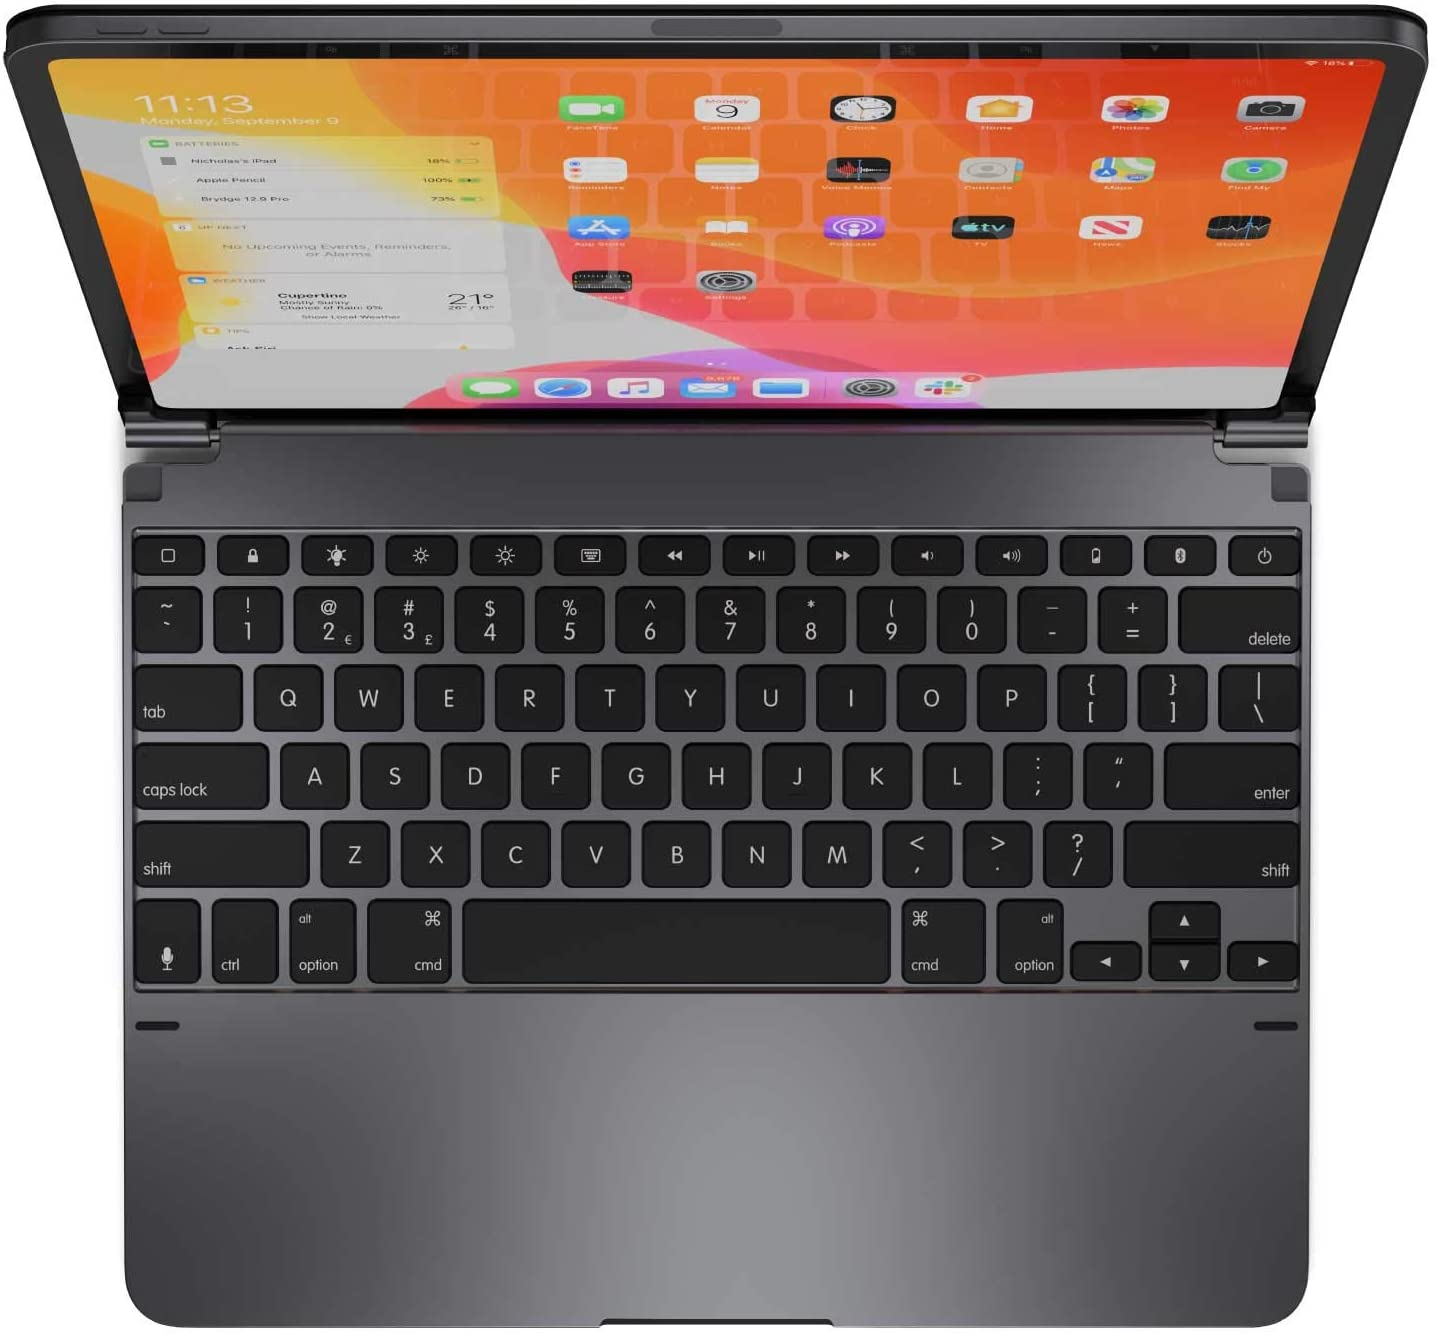 Brydge Pro 12.9 Keyboard for iPad Pro 12.9-inch 3rd Generation, 2018 Model Only   Aluminum Wireless Bluetooth Keyboard with Backlit Keys   Long Battery Life   (Space Gray)